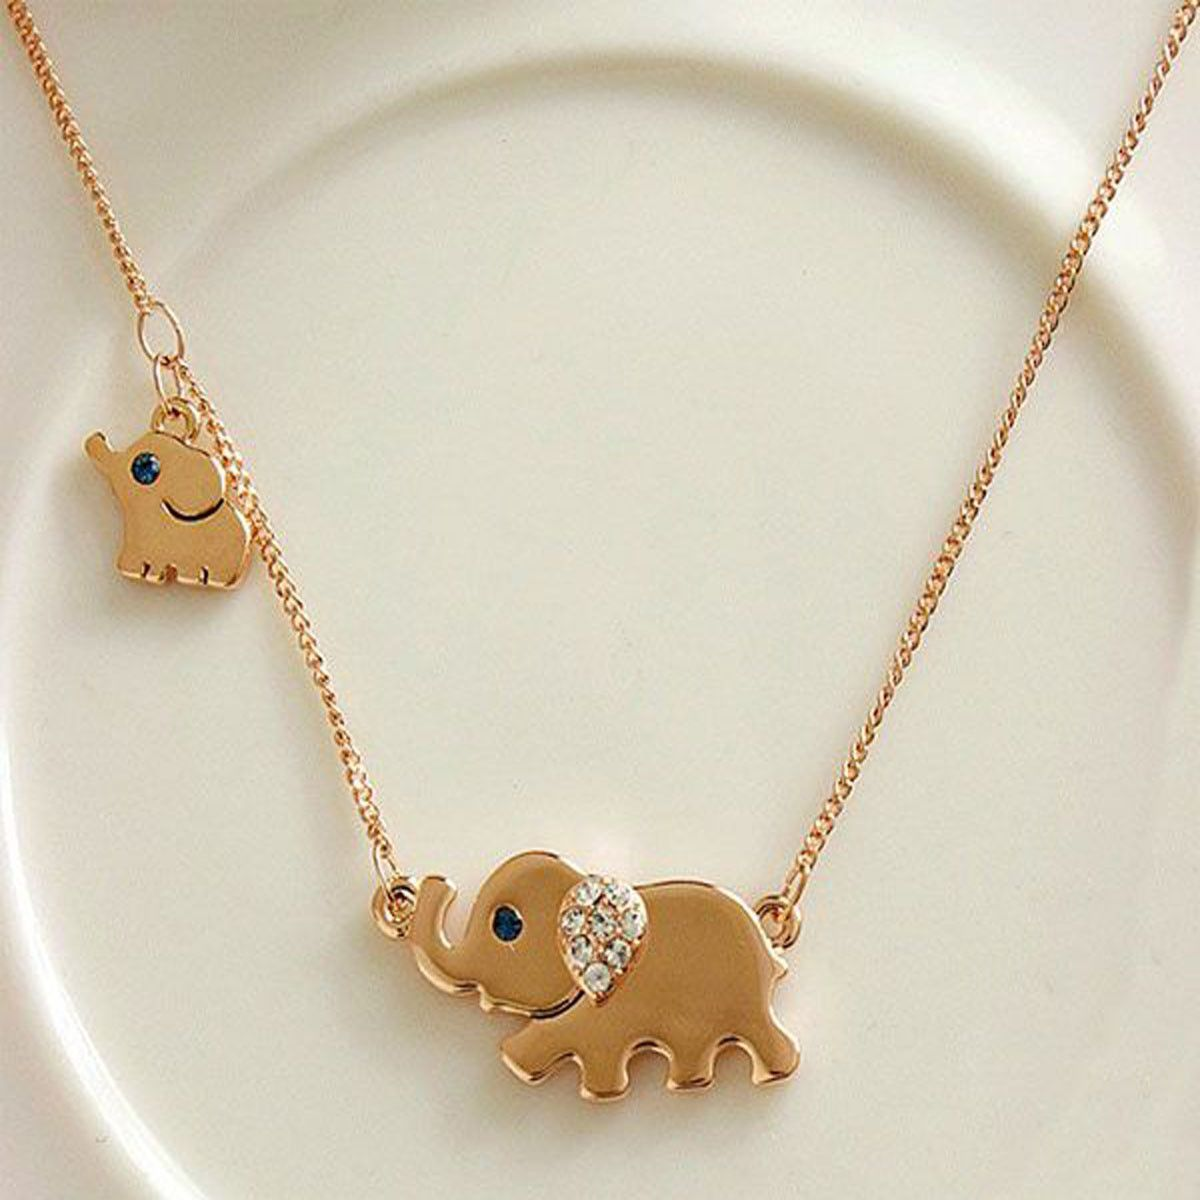 Mom and baby elephant pendant sawn pendants pinterest baby jewelry i love the little elephant pendant necklace and baby elephant so cute fashion gold jewelry 2013 gold pendant necklace for women aloadofball Images